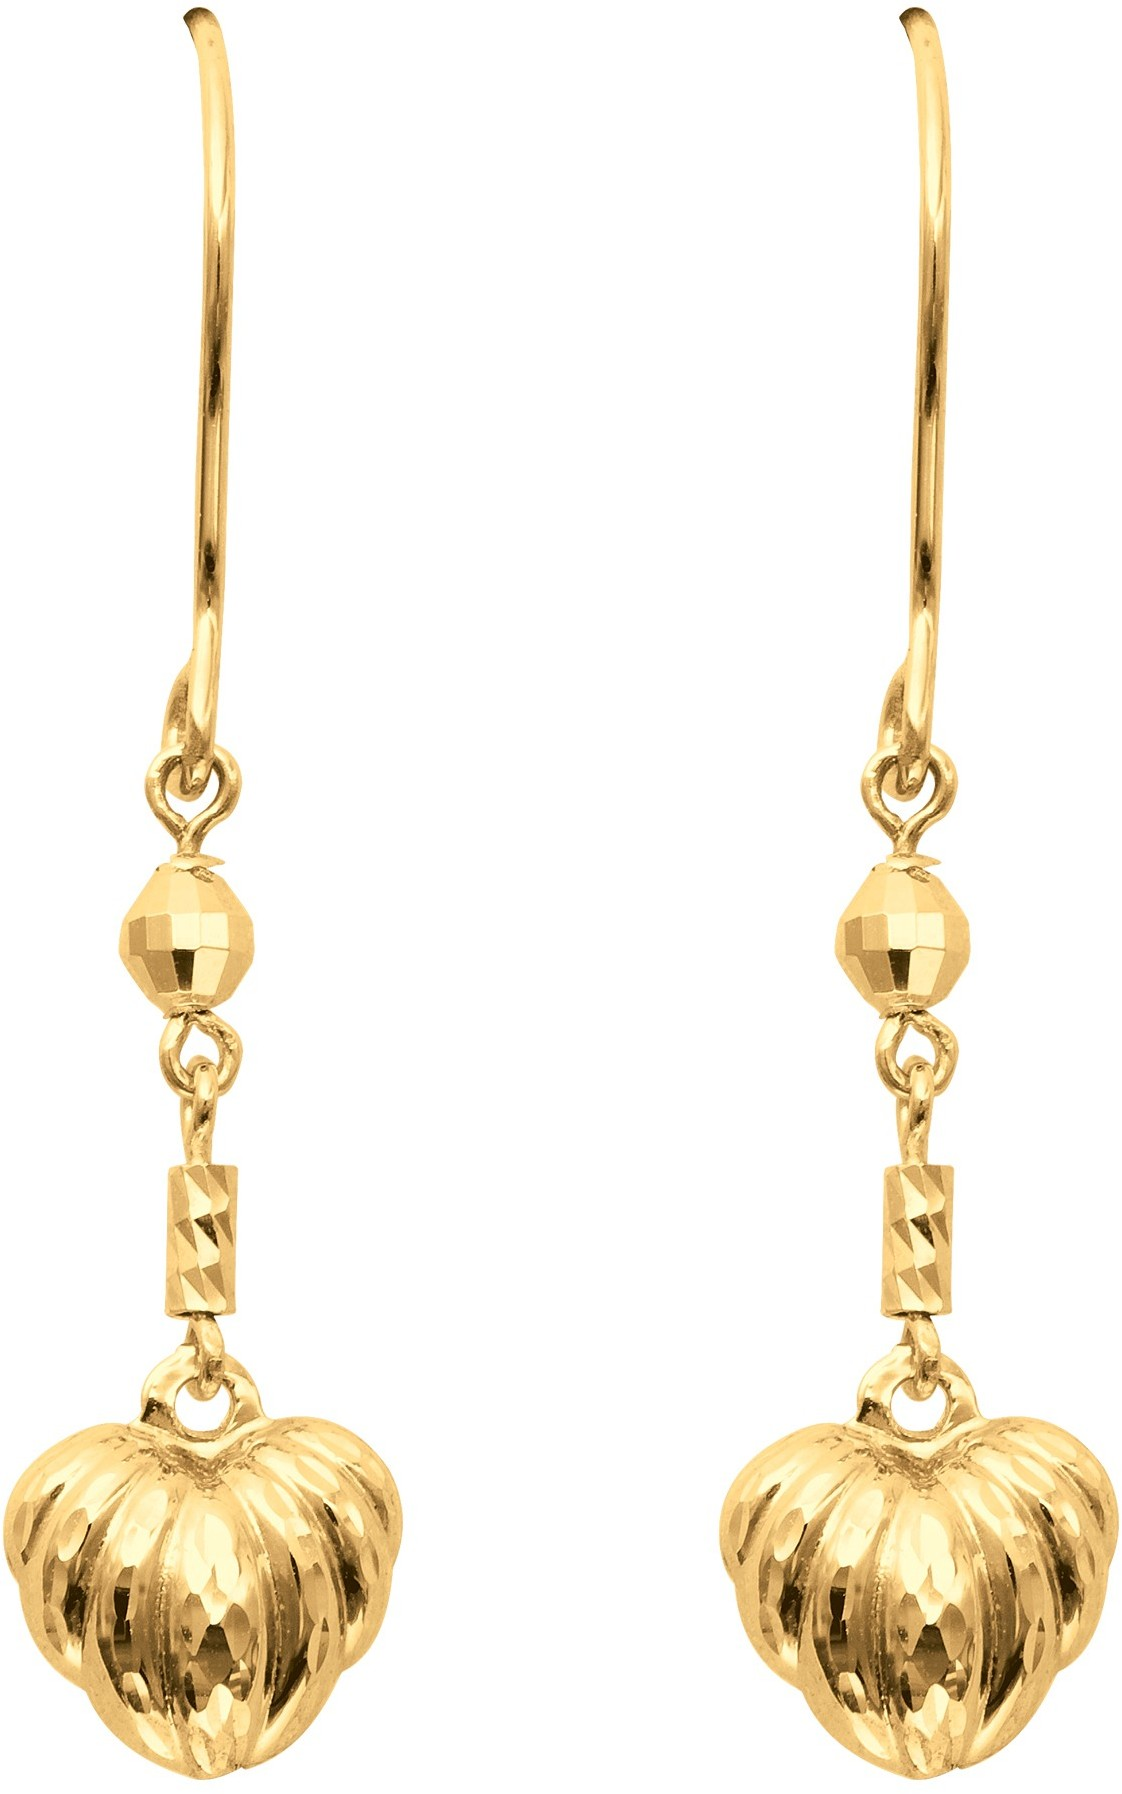 14K Yellow Gold Textured Polished Chain Link Dangle Earrings w/ Puff Heart